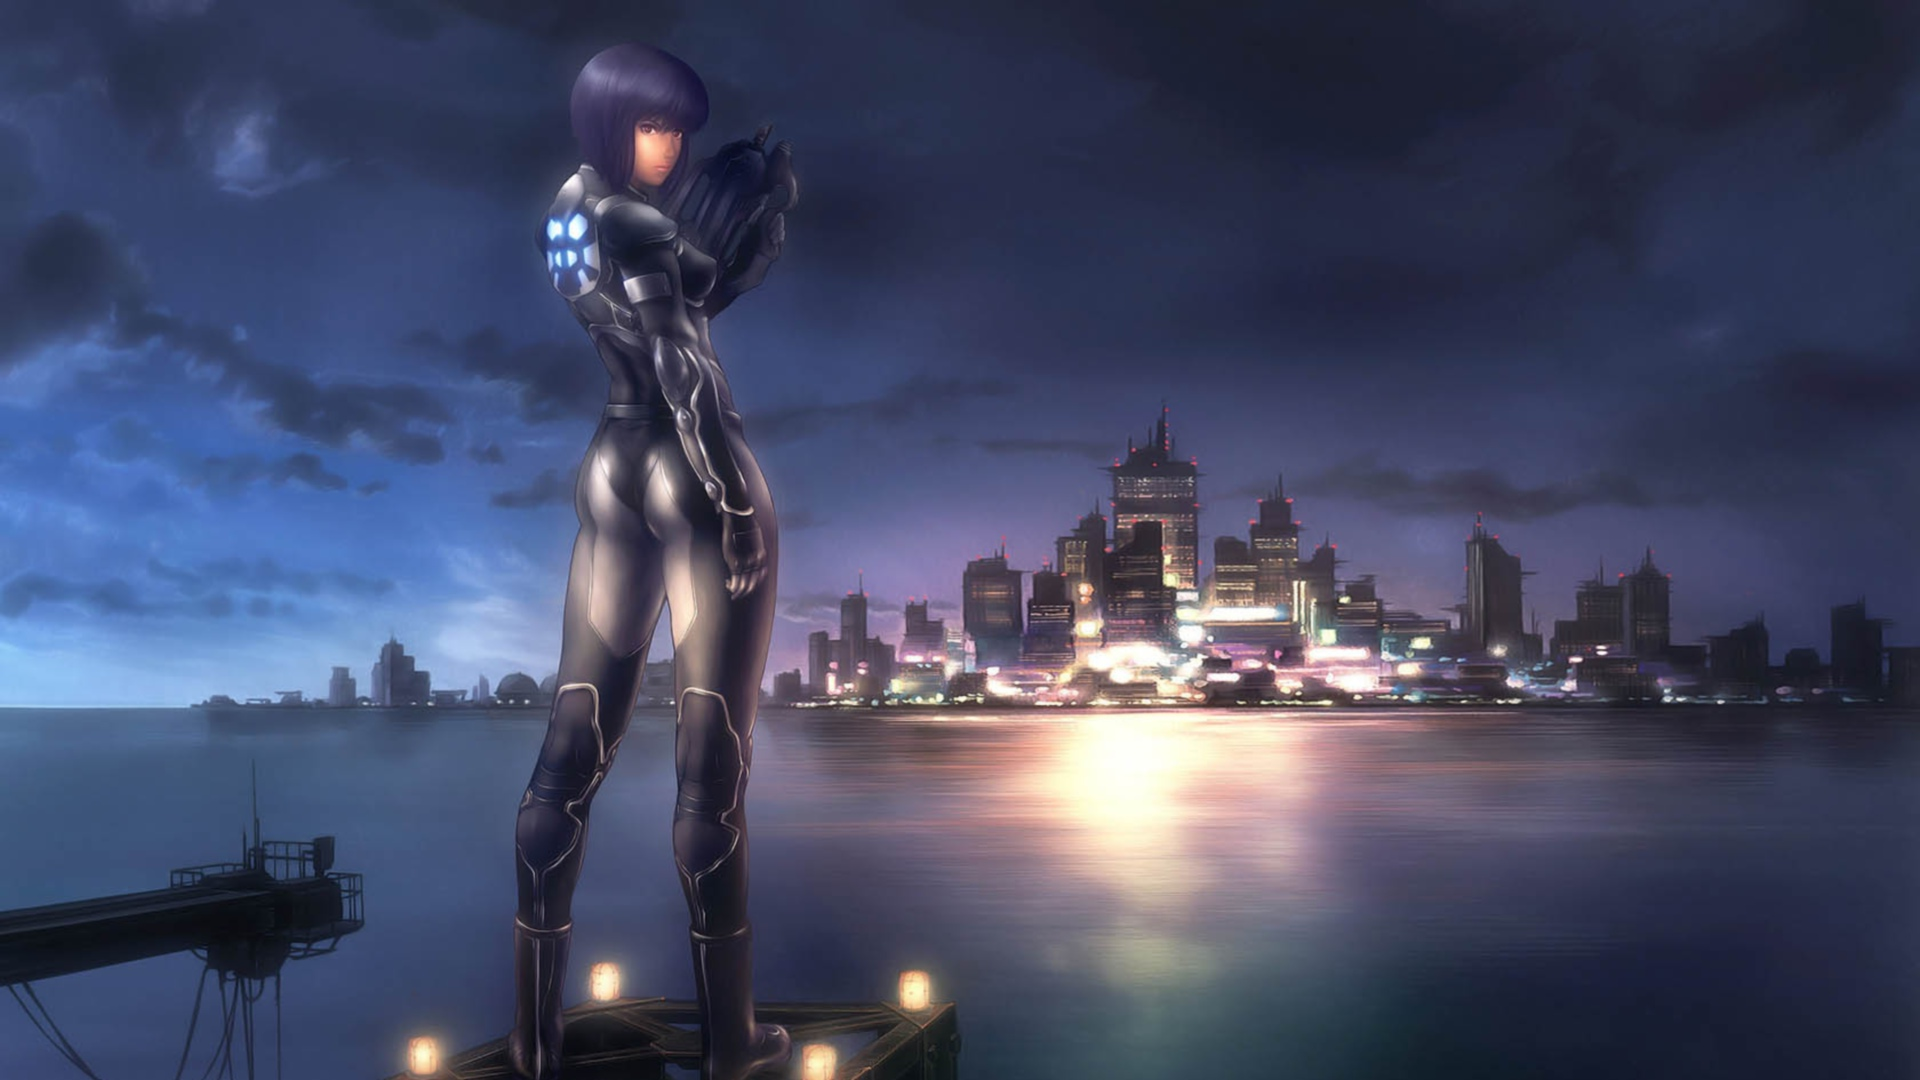 Ghost In The Shell Anime Major 1920x1080 Download Hd Wallpaper Wallpapertip